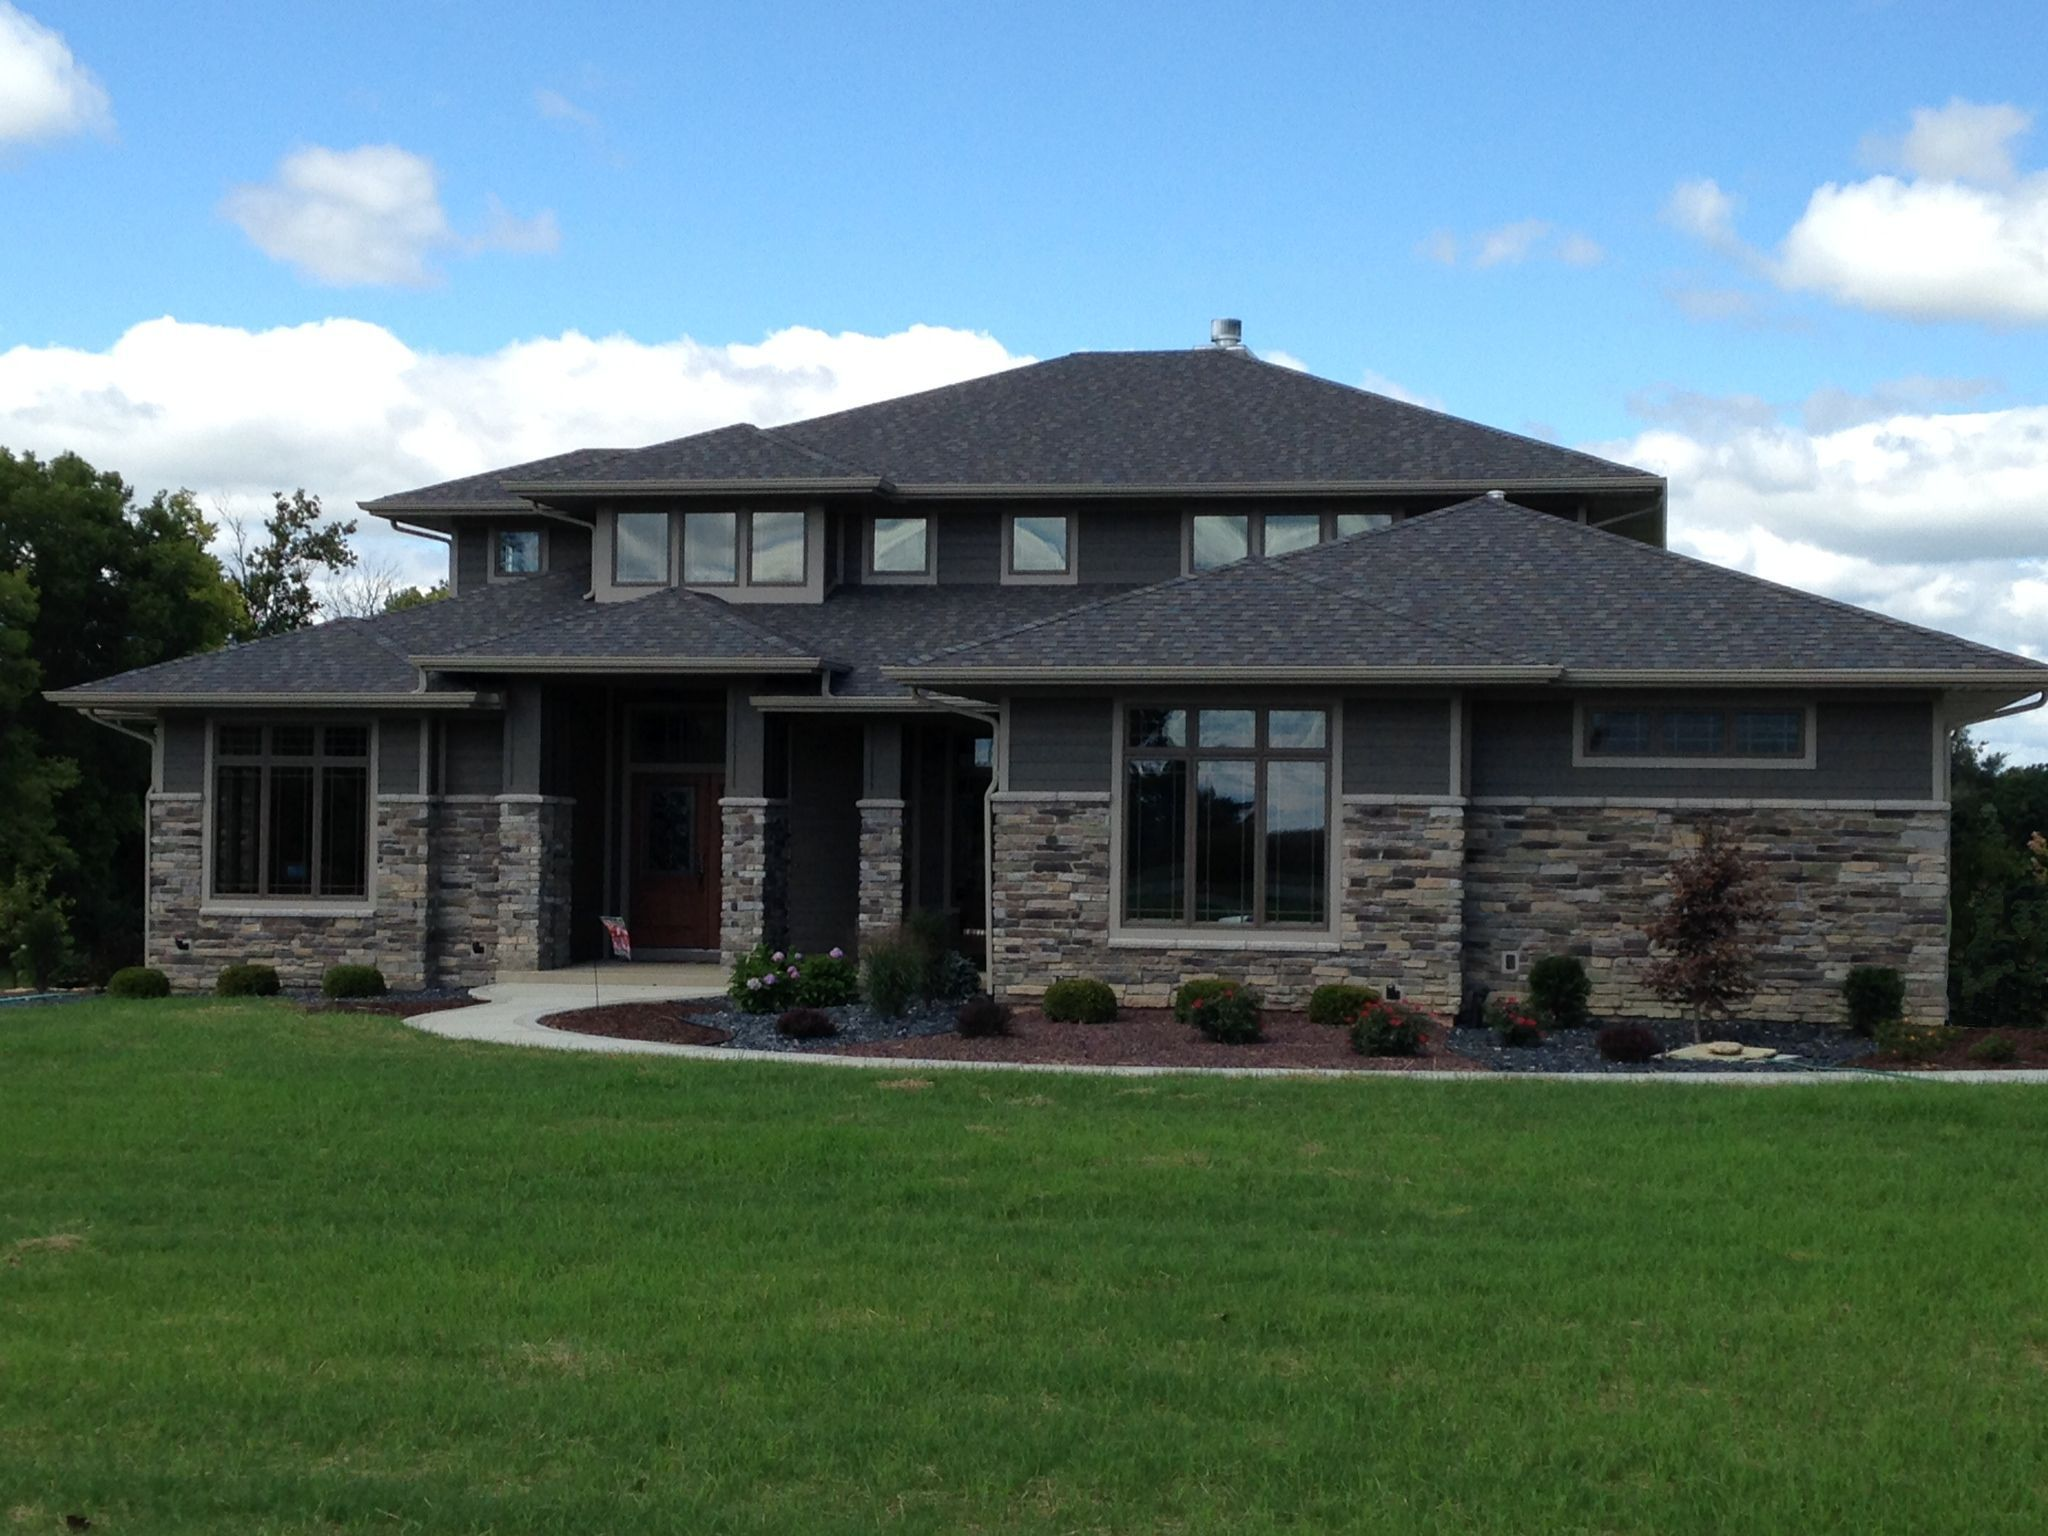 11 Awesome Modern Ranch Style Home Design Ideas Prairie Style Houses Home Styles Exterior Ranch House Exterior